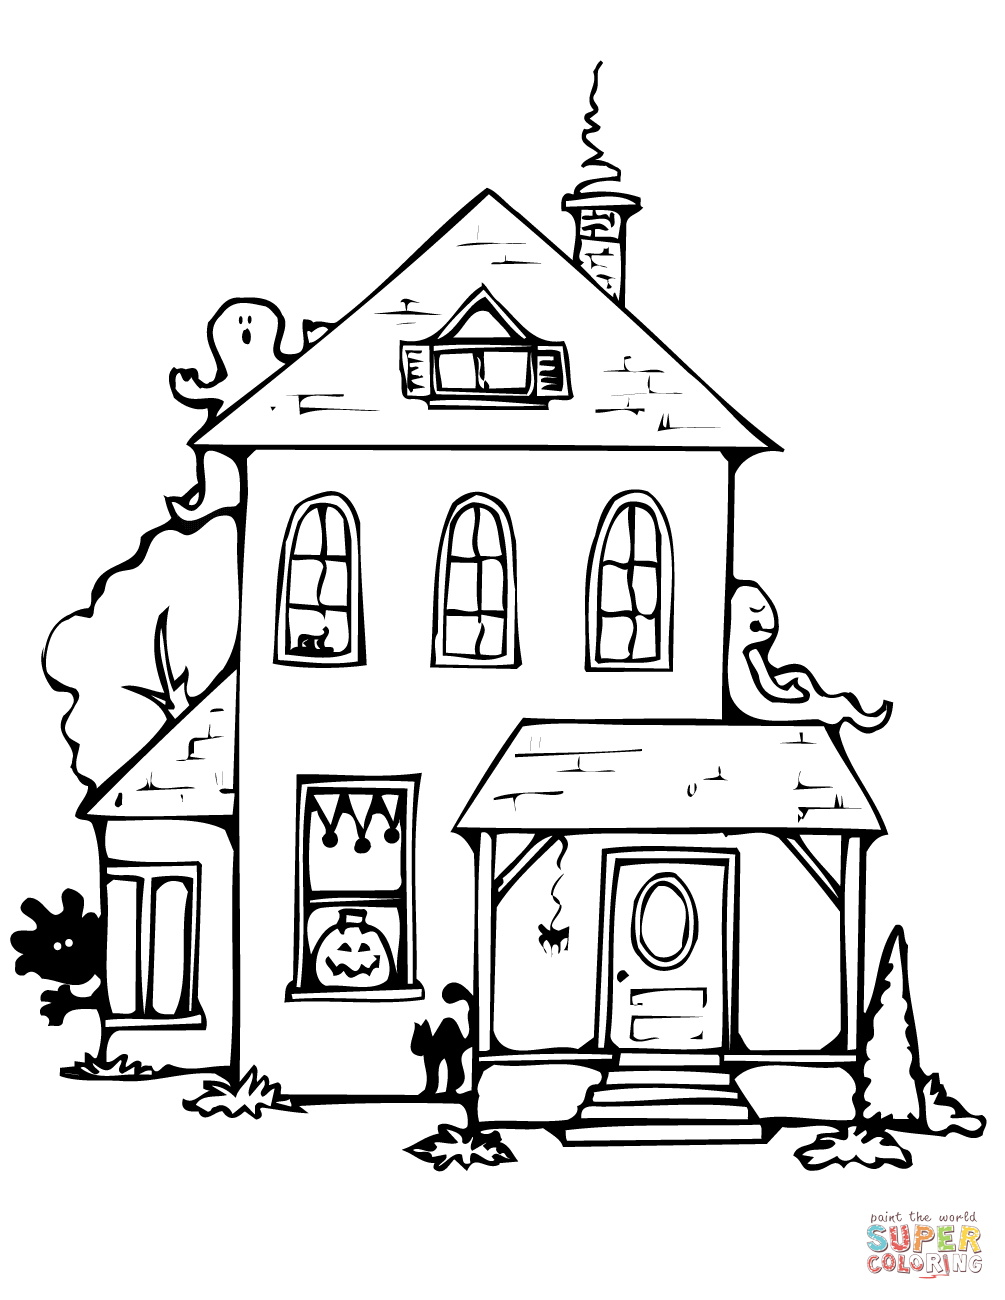 haunted house printable coloring pages haunted house coloring page free printable coloring pages haunted house pages printable coloring